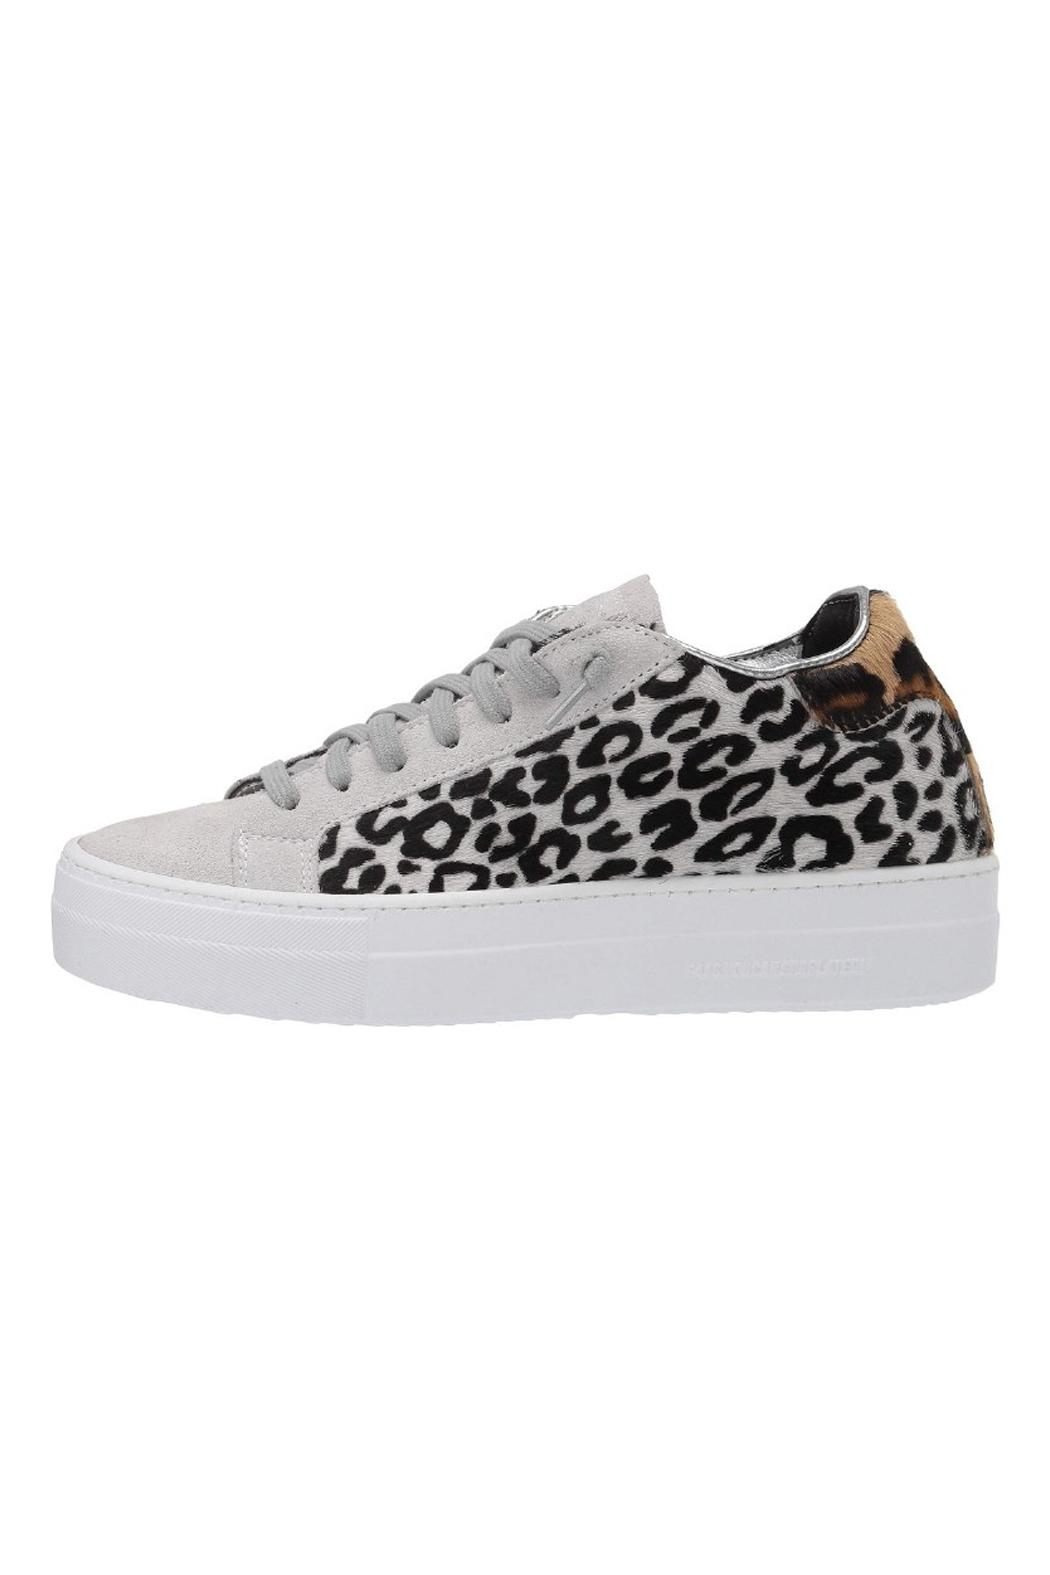 P448 Thea Animal Sneaker - Front Cropped Image